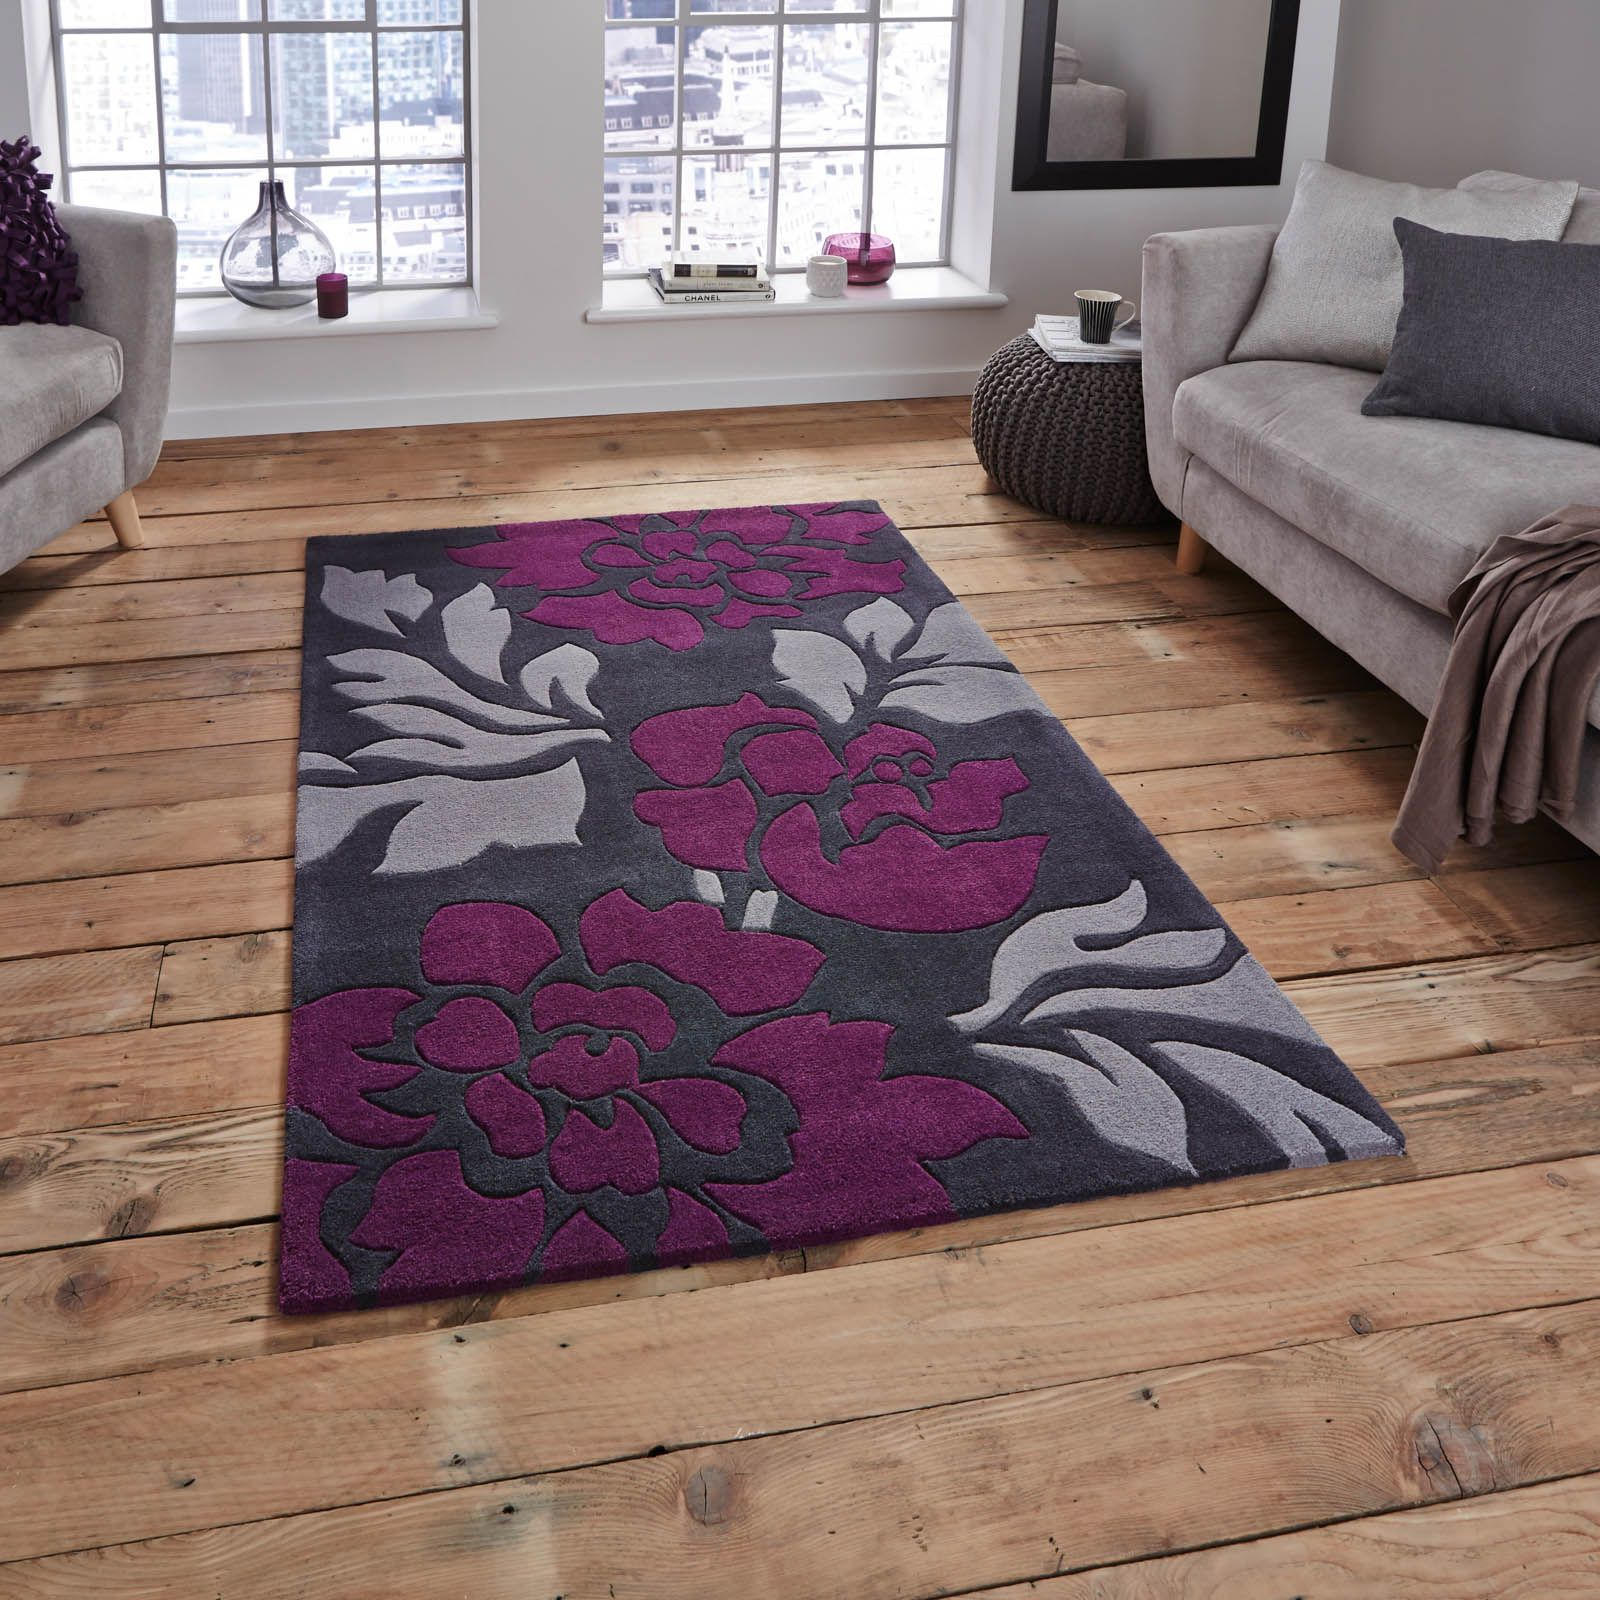 The Hong Kong Rug In Grey And Purple Is Handmade China Offers A Luxurious Deep Soft 100 Acrylic Pile This Range Easy To Clean Colourfast